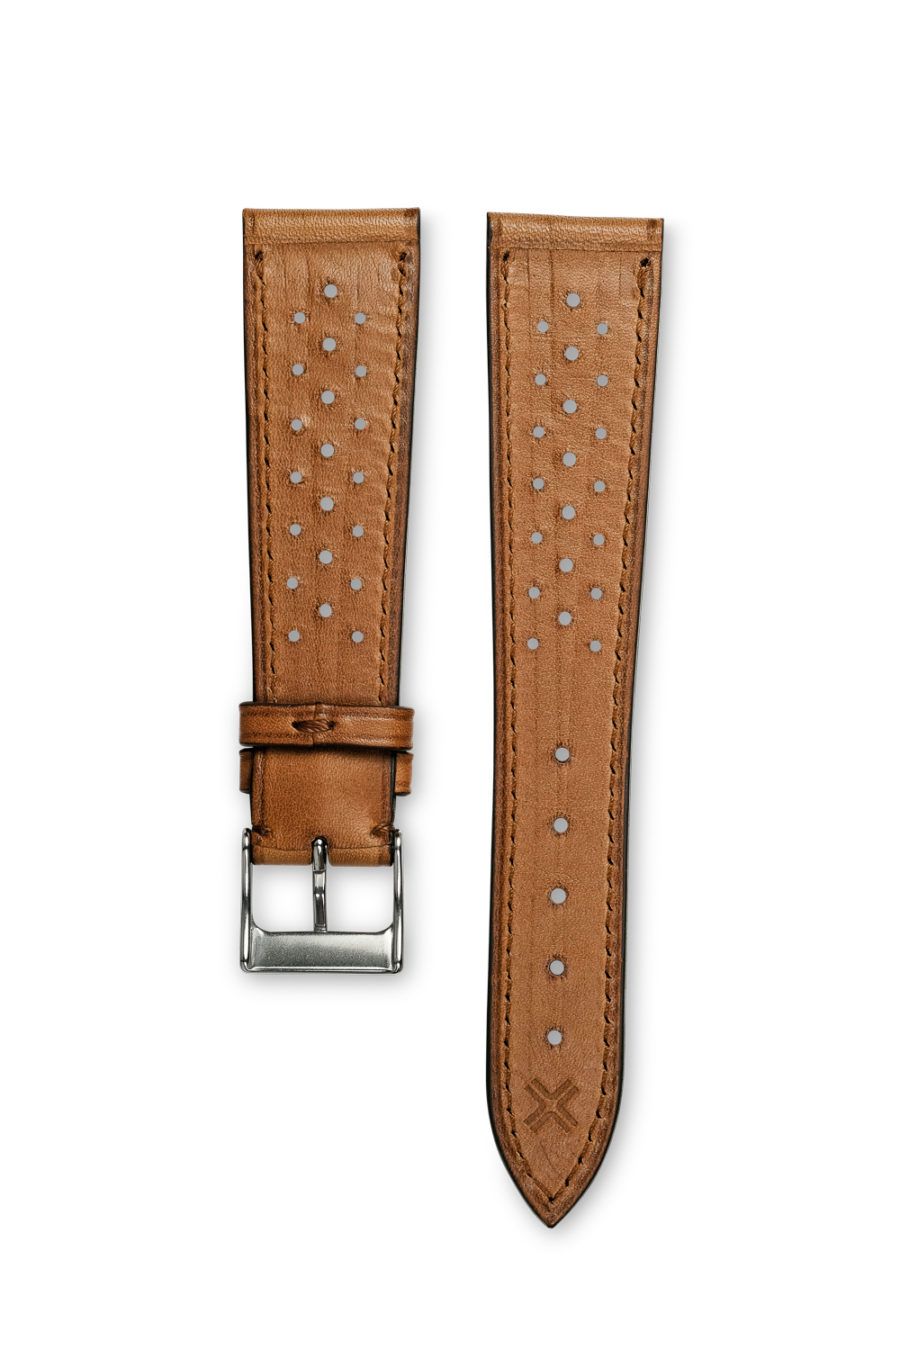 Smooth Racing light brown Tan leather watch strap - tone on tone stitching - LUGS brand